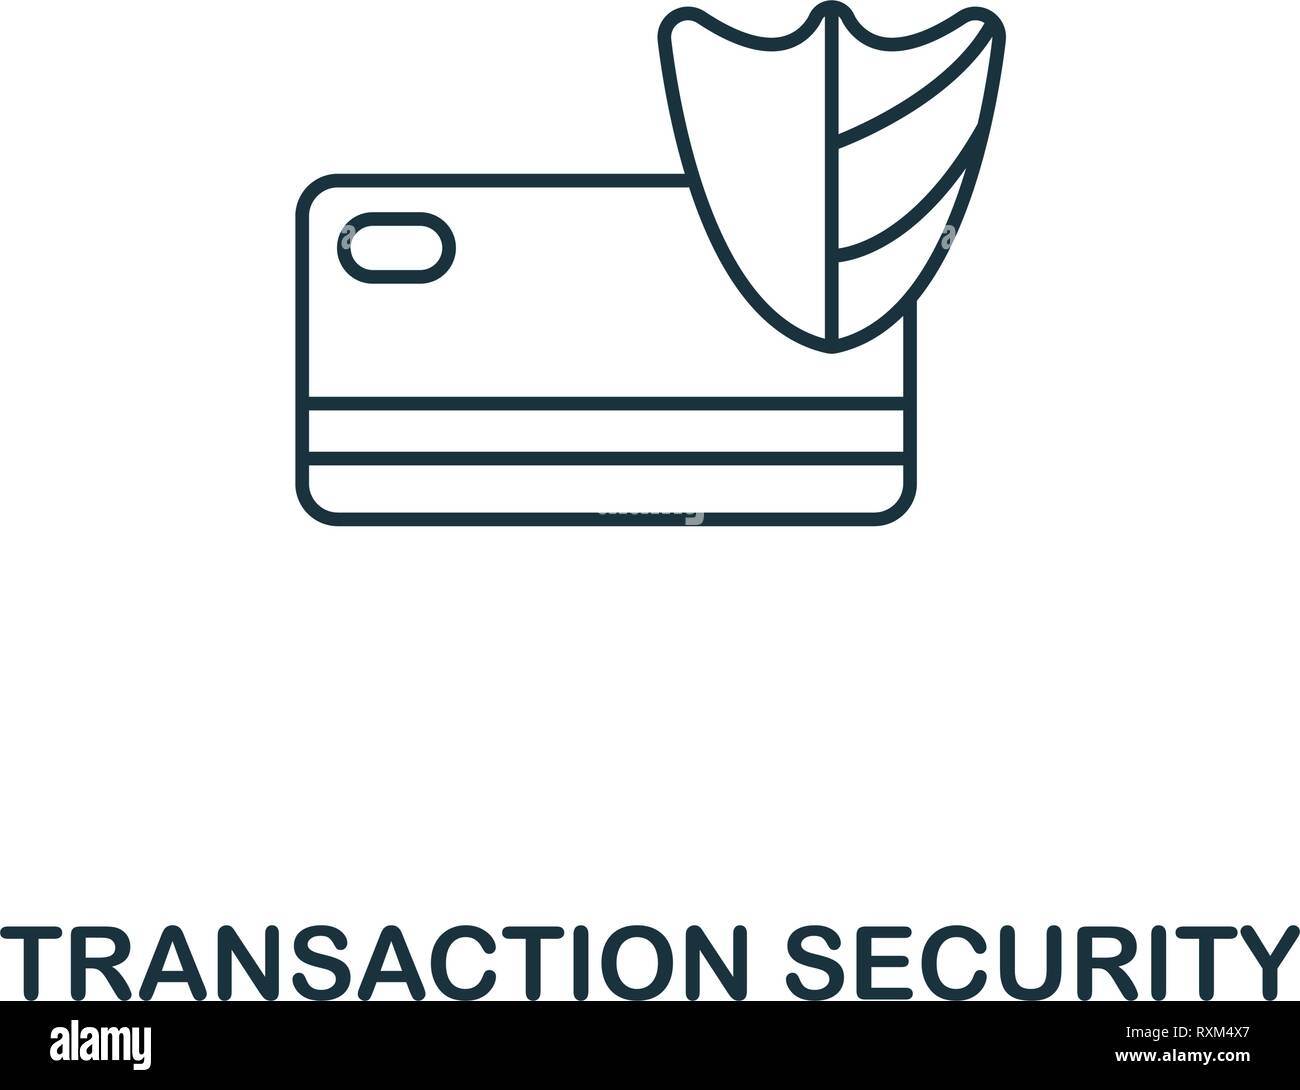 Transaction Security icon thin line style. Symbol from online marketing icons collection. Outline transaction security icon for web design, apps - Stock Vector